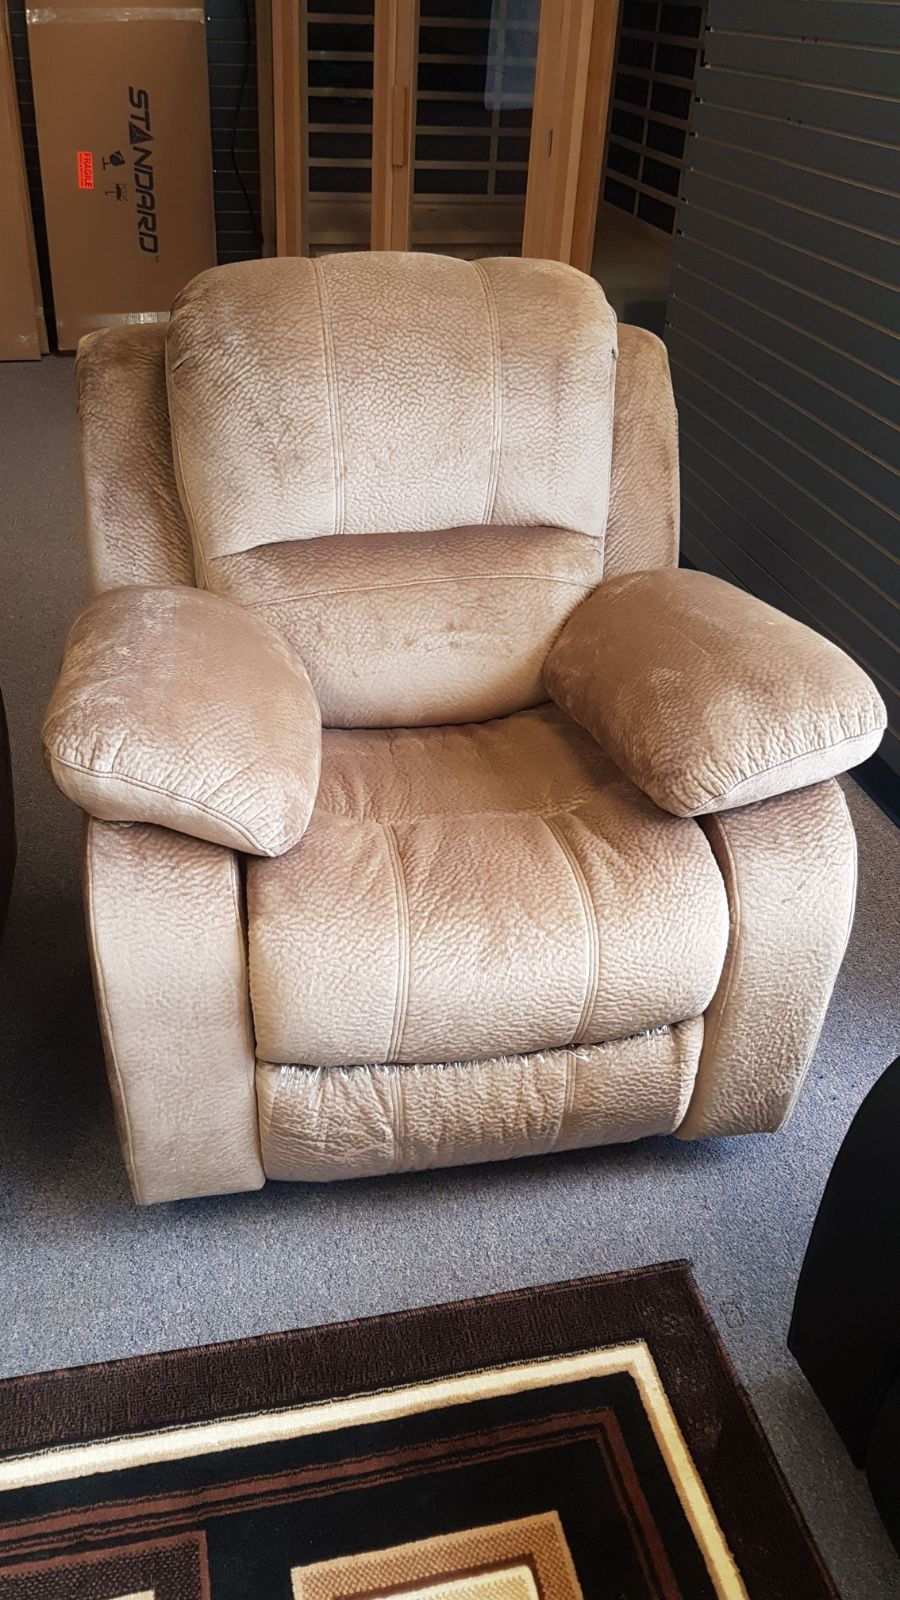 Rocking Recliner Furniture Living Room Chair Microfiber